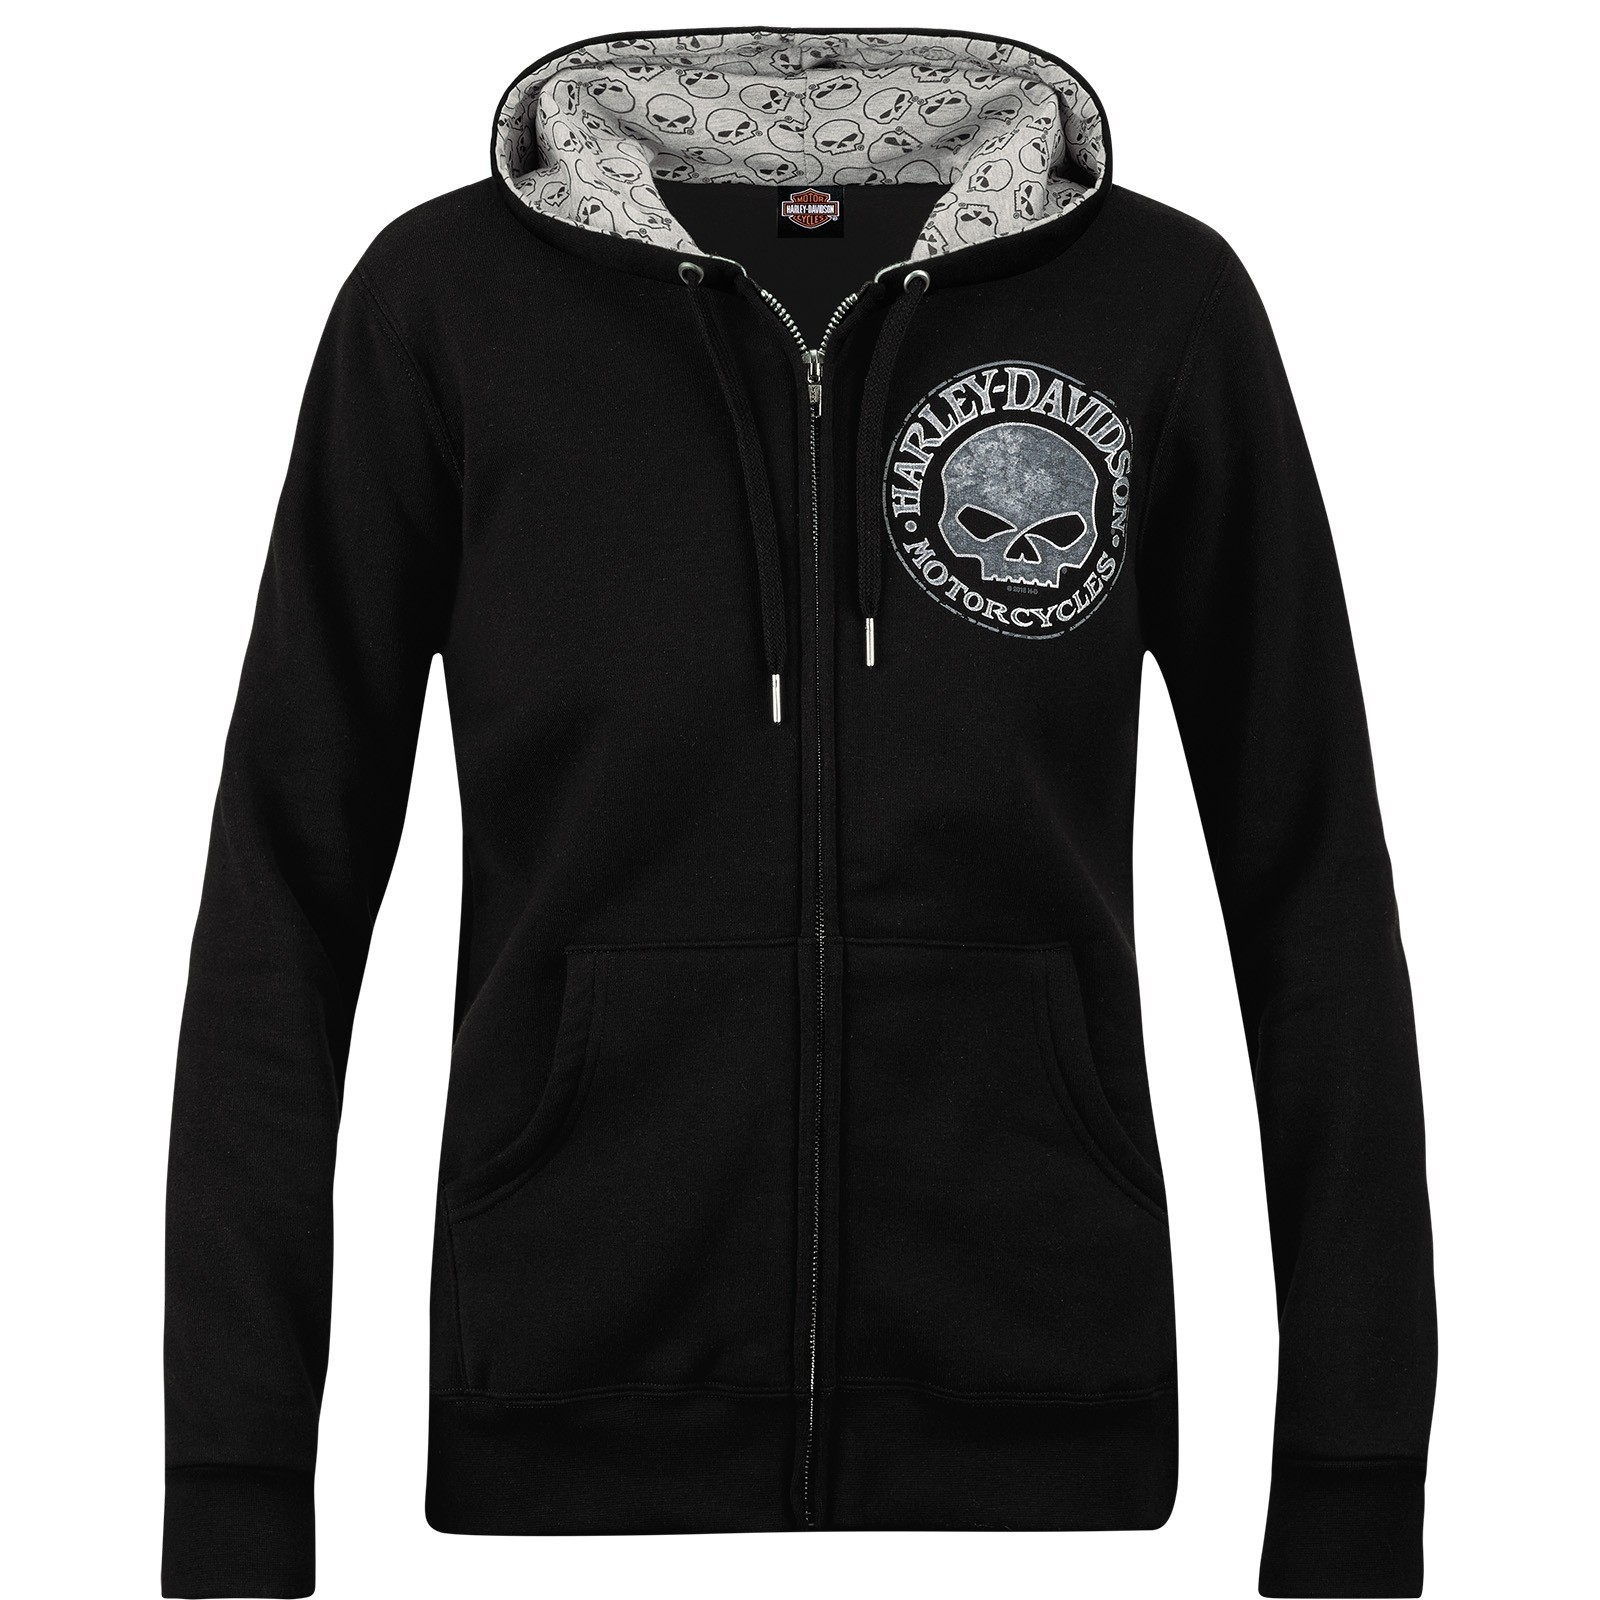 Harley-Davidson Military Women's Zippered Printed Hoodie - Overseas Tour | Sparkle G